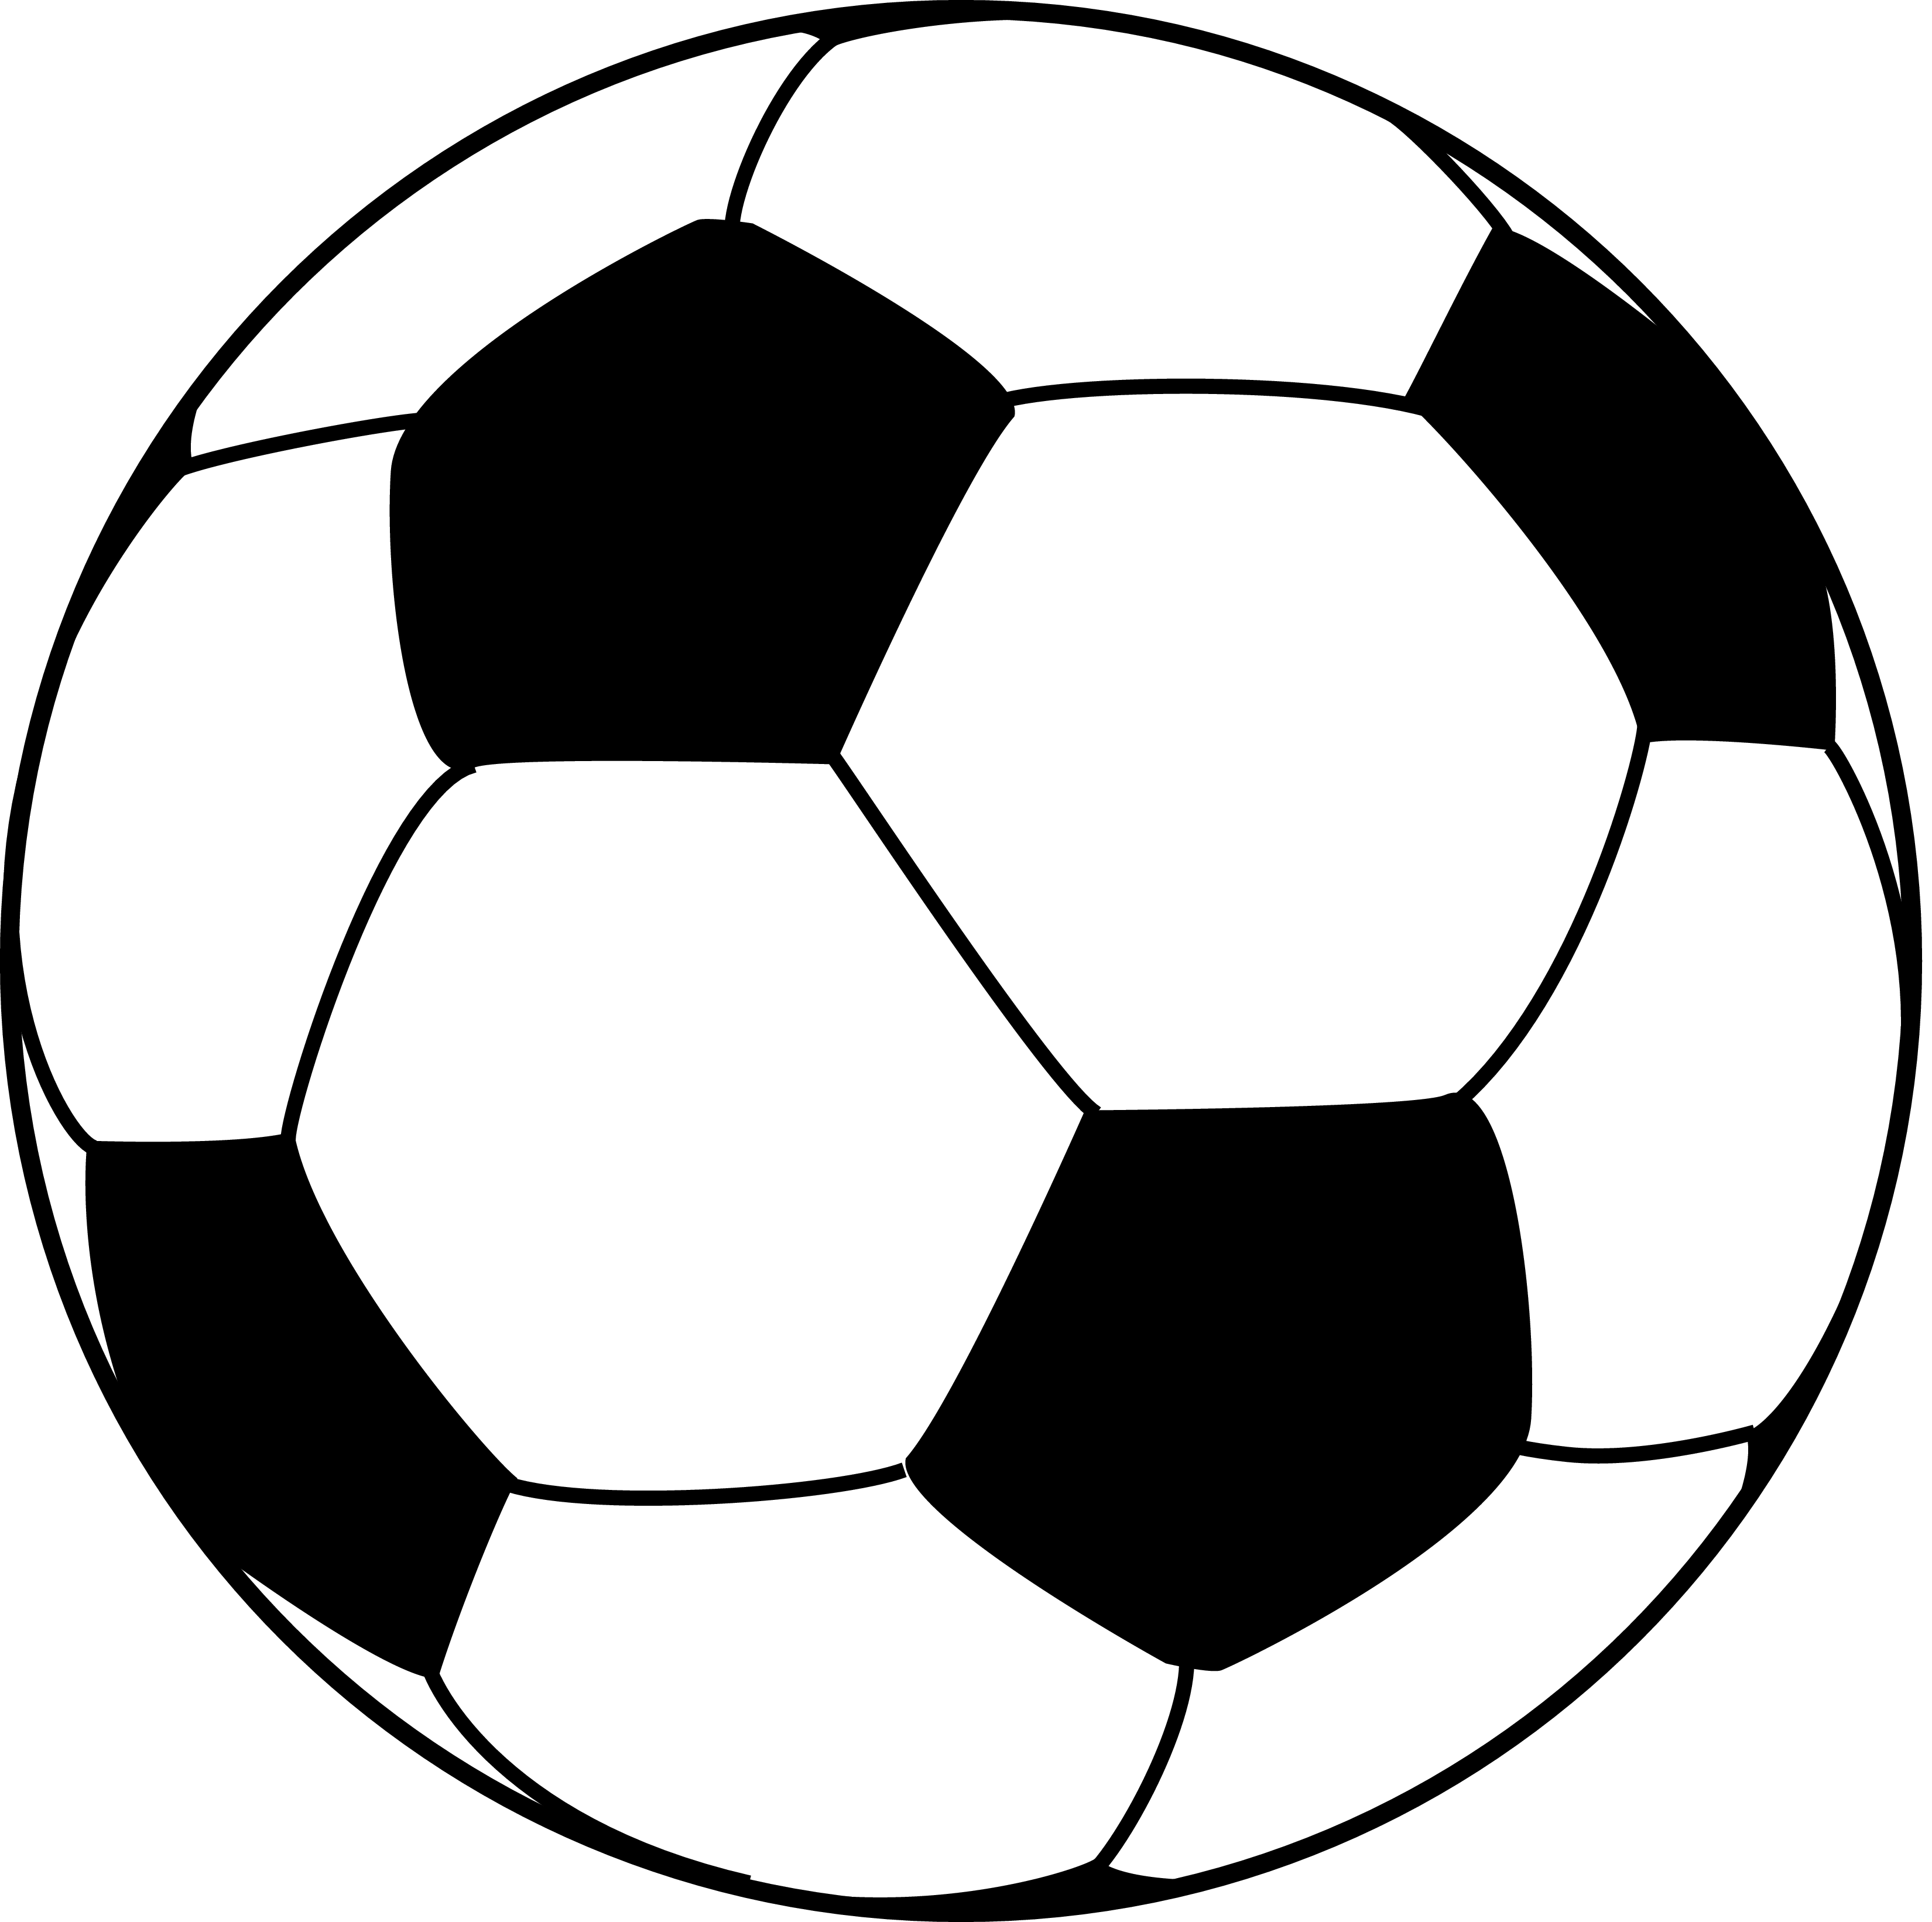 Soccerball drawing outline. Collection of line